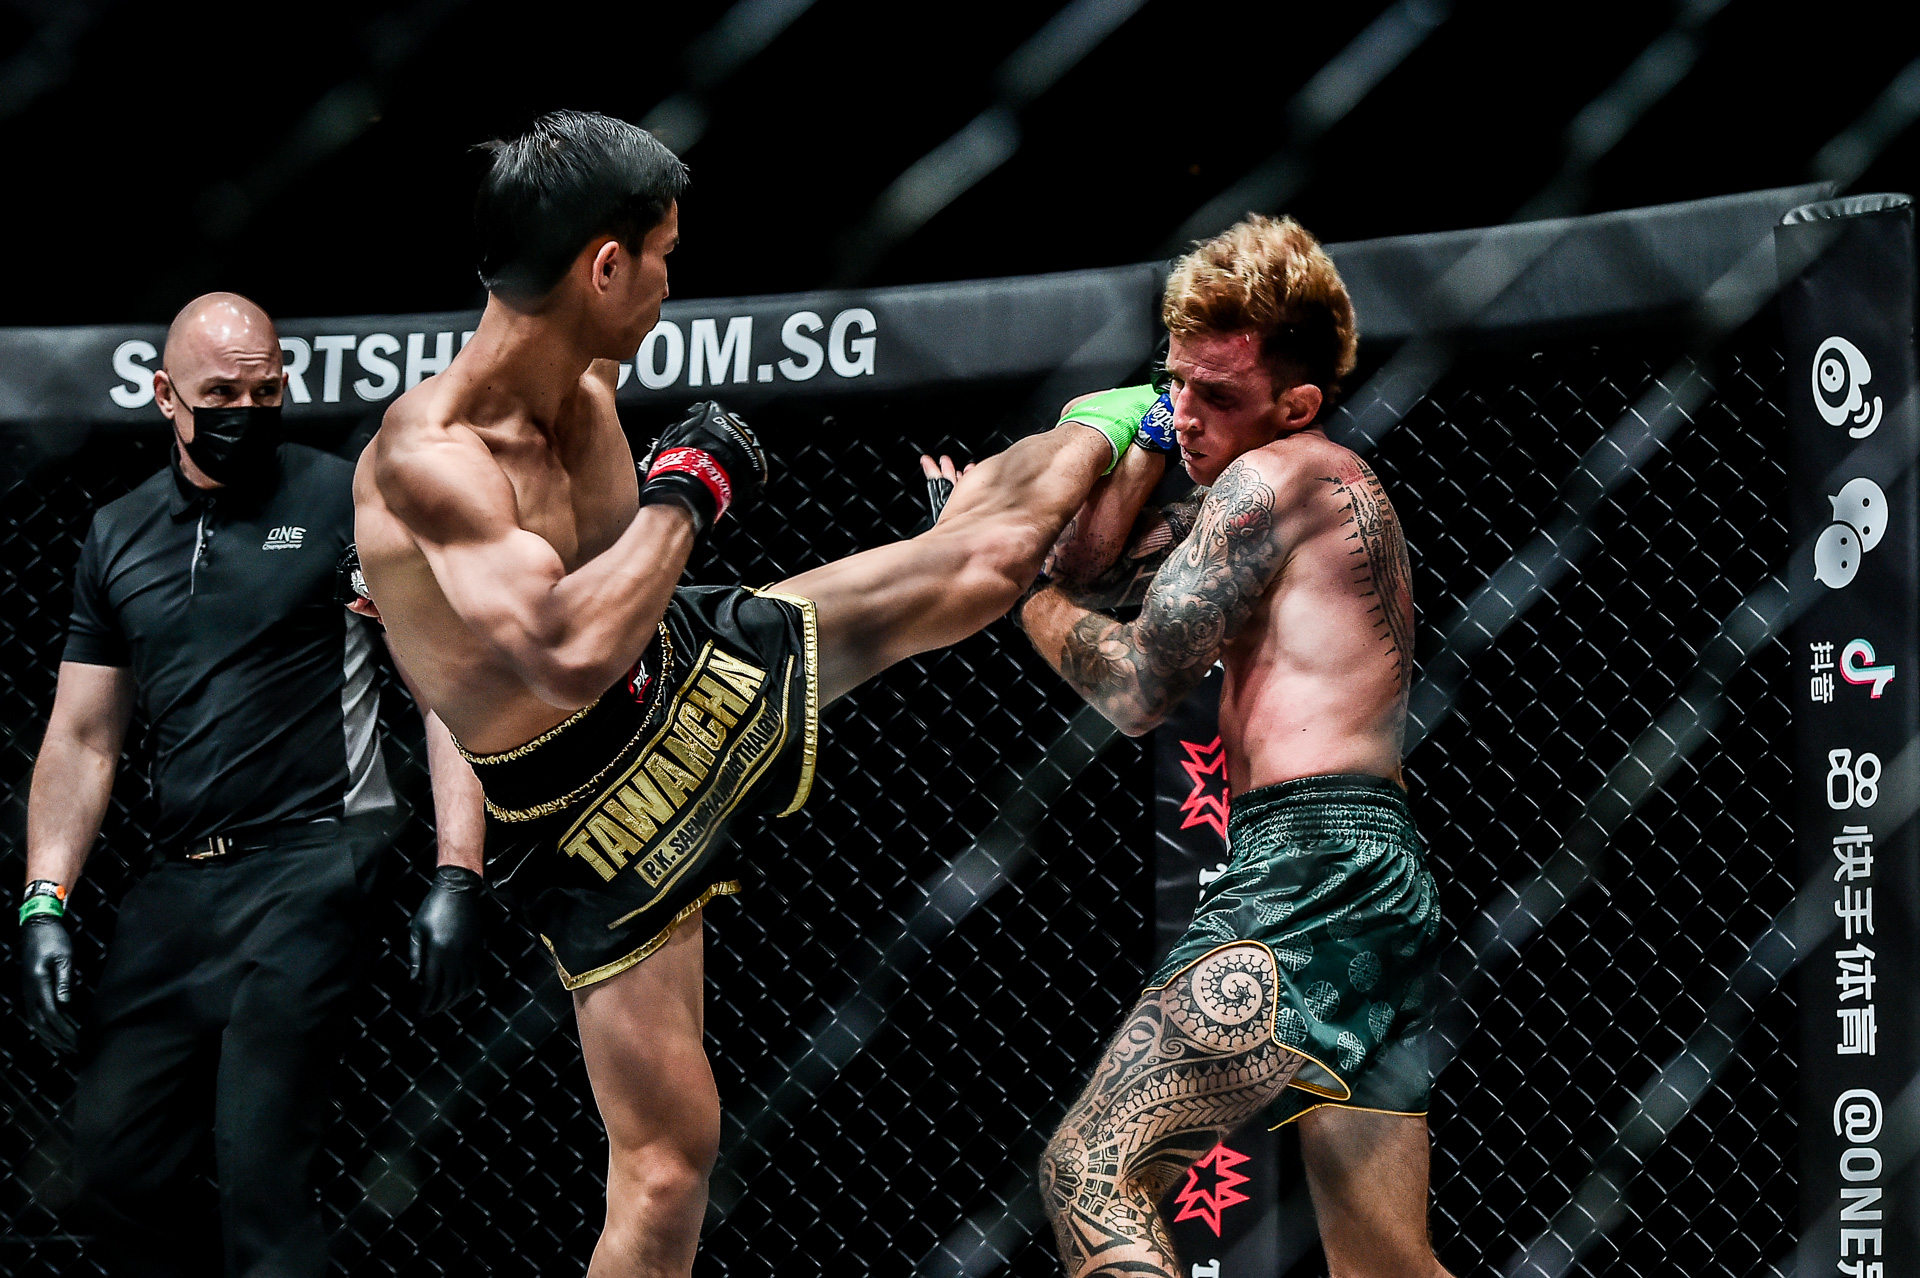 Scenes from the Muay Thai bout between Tawanchai PK.Saenchai Muaythaigym and Sean Clancy at ONE: DANGAL on 15 May